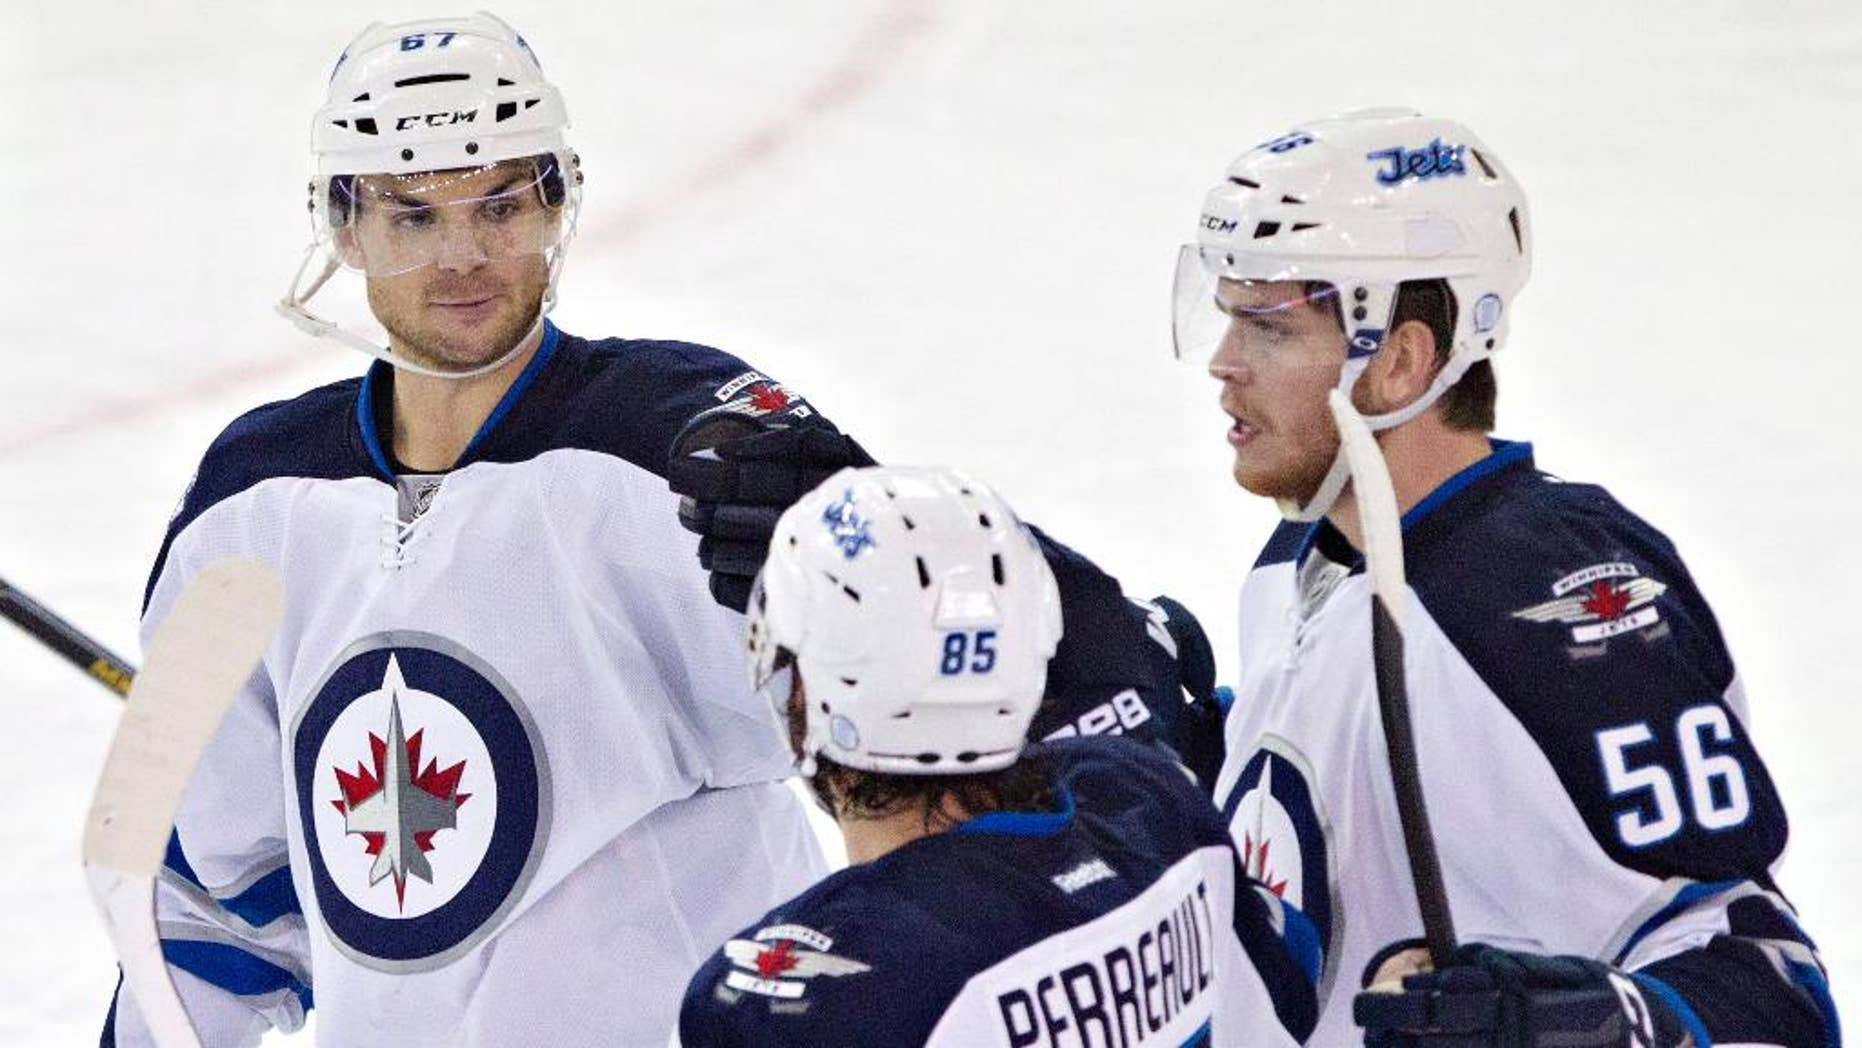 Winnipeg Jets Michael Frolik (67), Mathieu Perreault (85)and Adam Lowry (56) celebrate a goal against the Edmonton Oilers during second period NHL hockey action in Edmonton, Alberta, on Monday, Sept. 29, 2014.(AP Photo/The Canadian Press, Jason Franson)